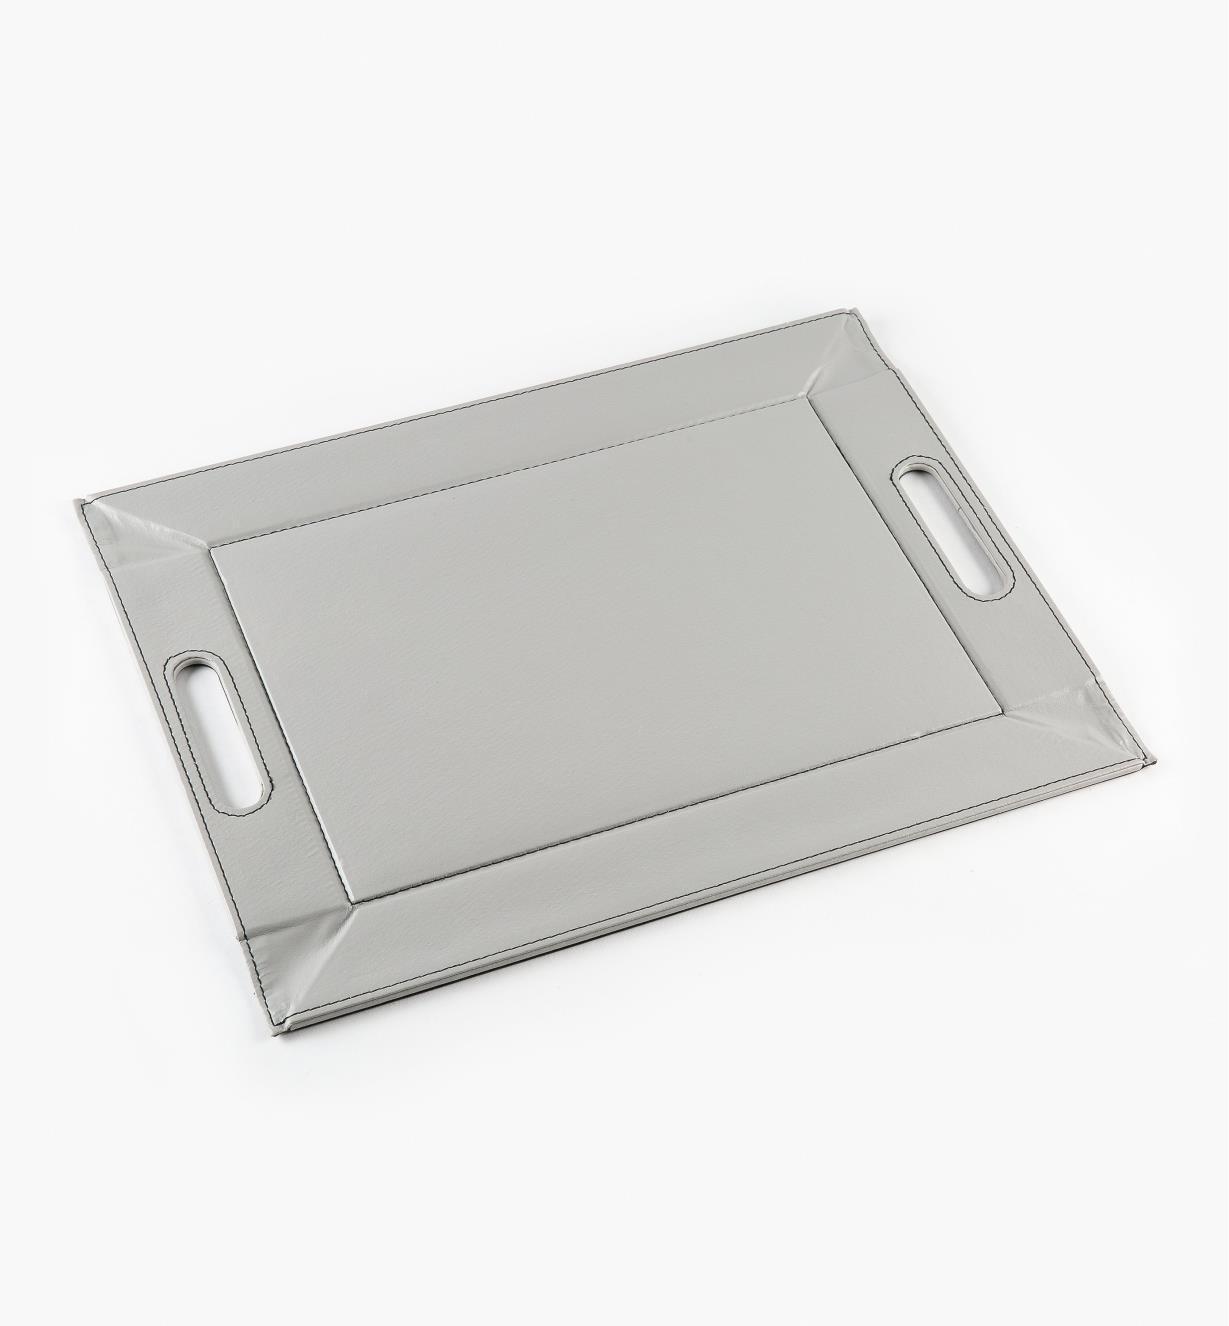 "GB520 - 14"" x 10"" x 2"" FreeForm Folding Tray"